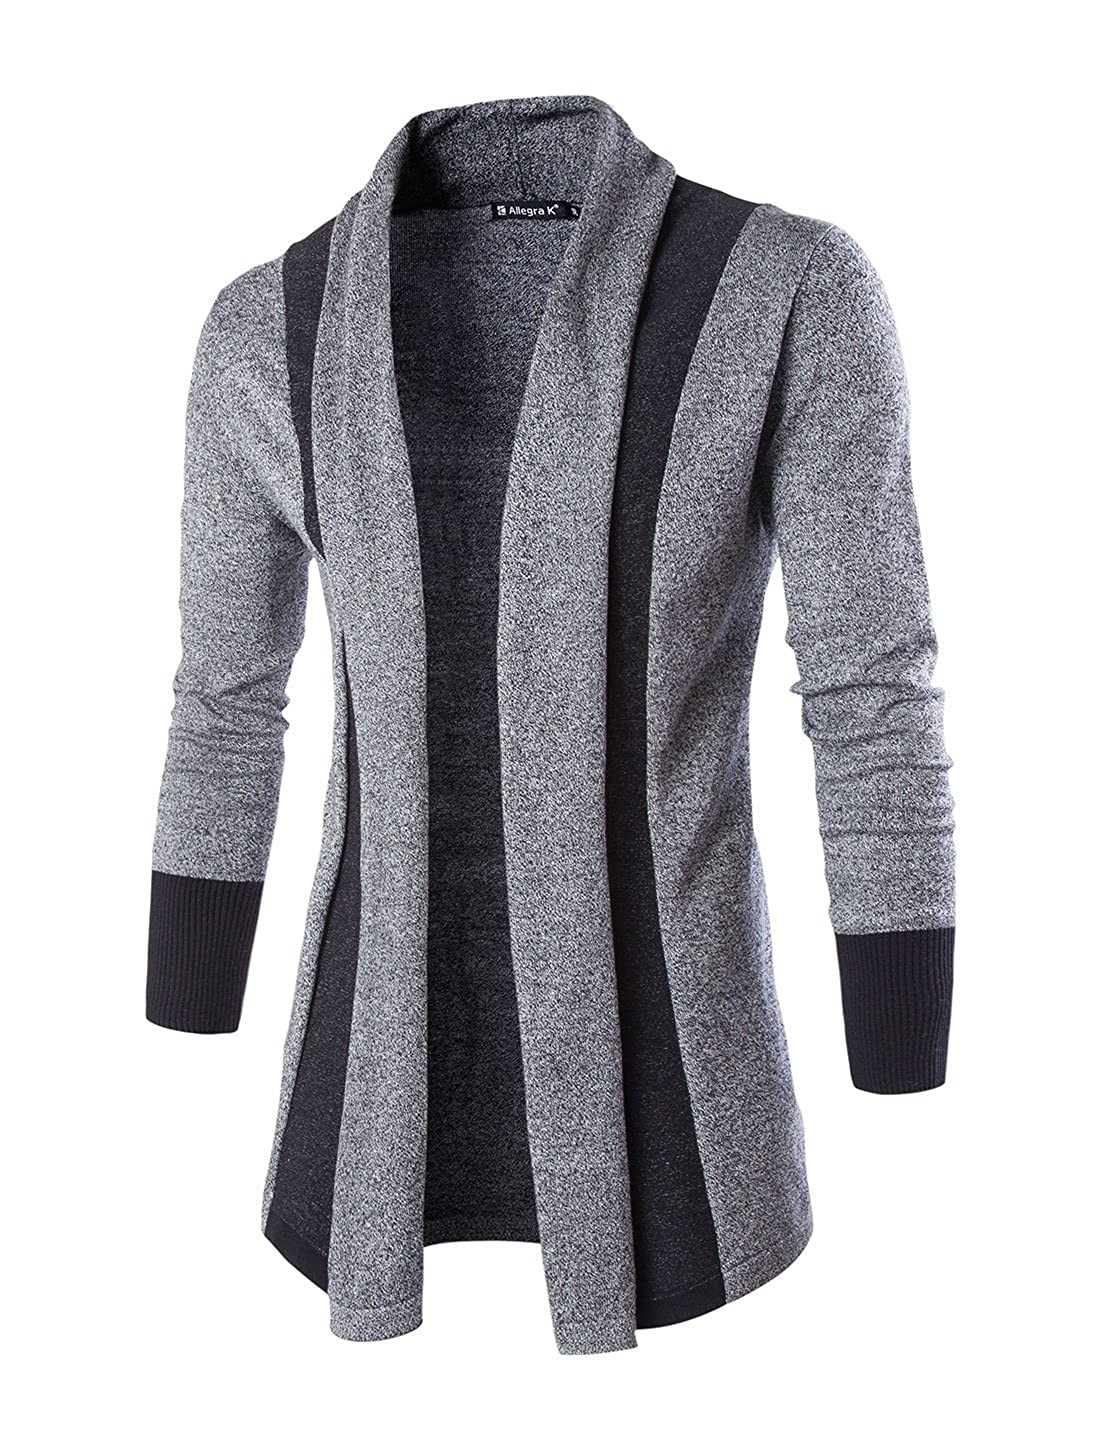 uxcell® Men Shawl Collar Contrast Color Long Sleeves Knit Cardigan Grey L a15110900ux0240